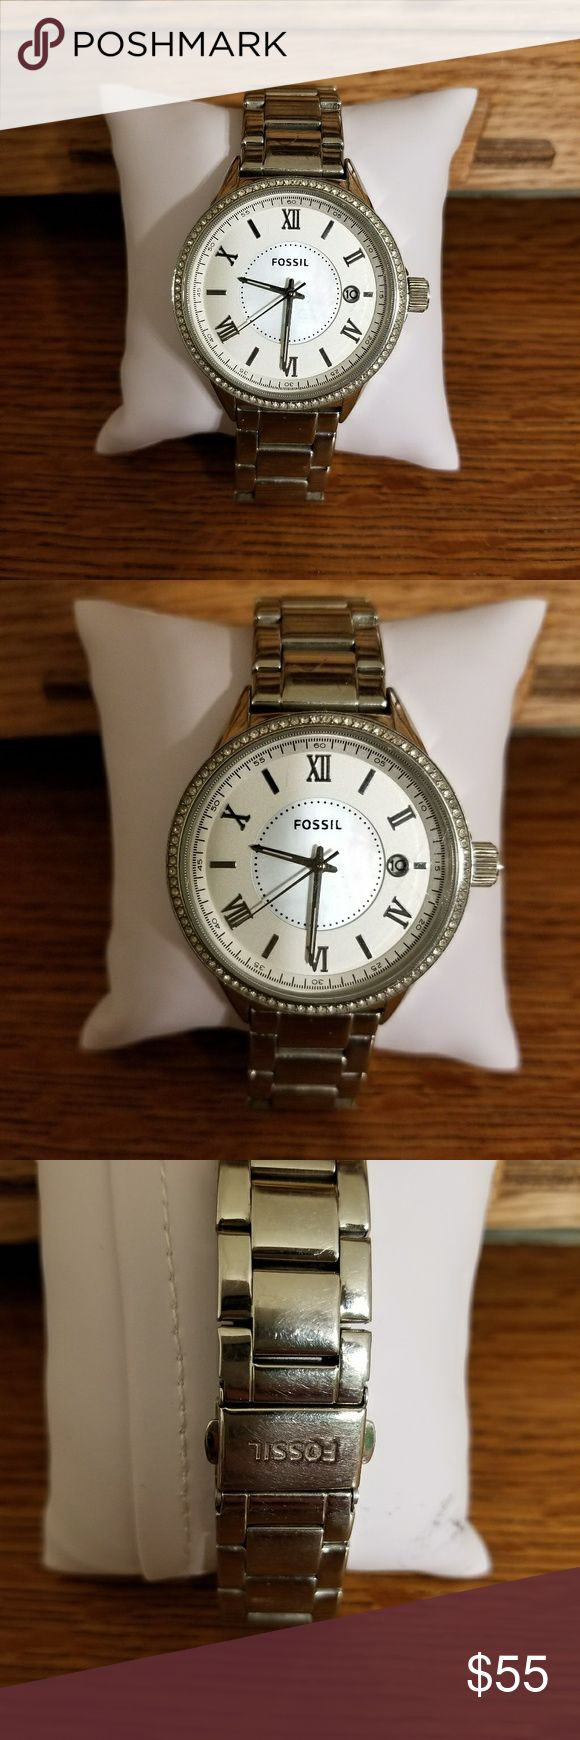 VGUC Women's Fossil watch VGUC Women's Fossil Watch. Mother of Pearl Face and date. Normal wear and tear.  No missing stones. Band is adjustable. Runs perfect.MSRP $125. Fossil Accessories Watches